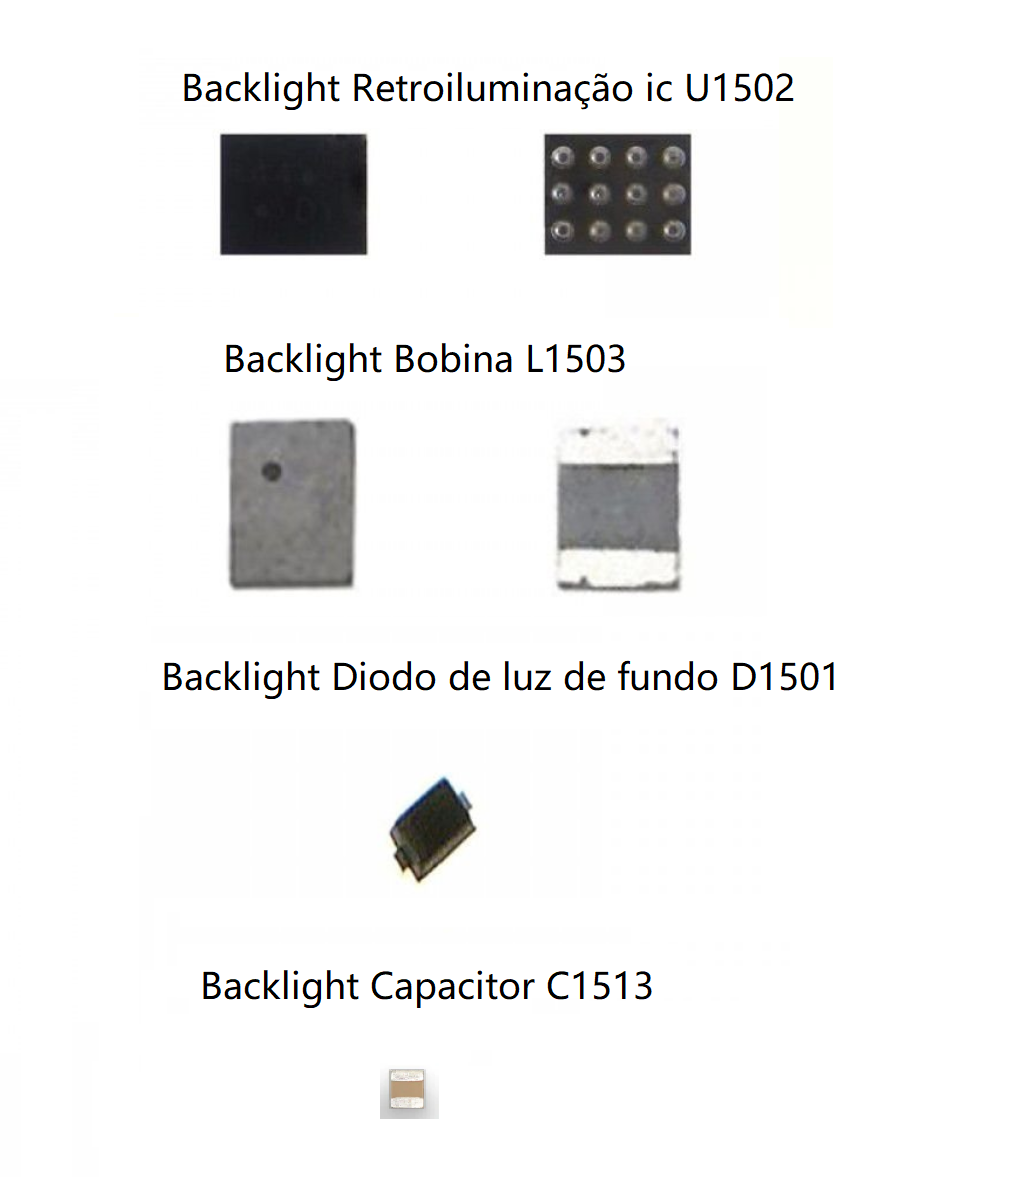 Ic Backlight Kit para iPhone 6/6 Plus U1502, D1501, L1503, C1513